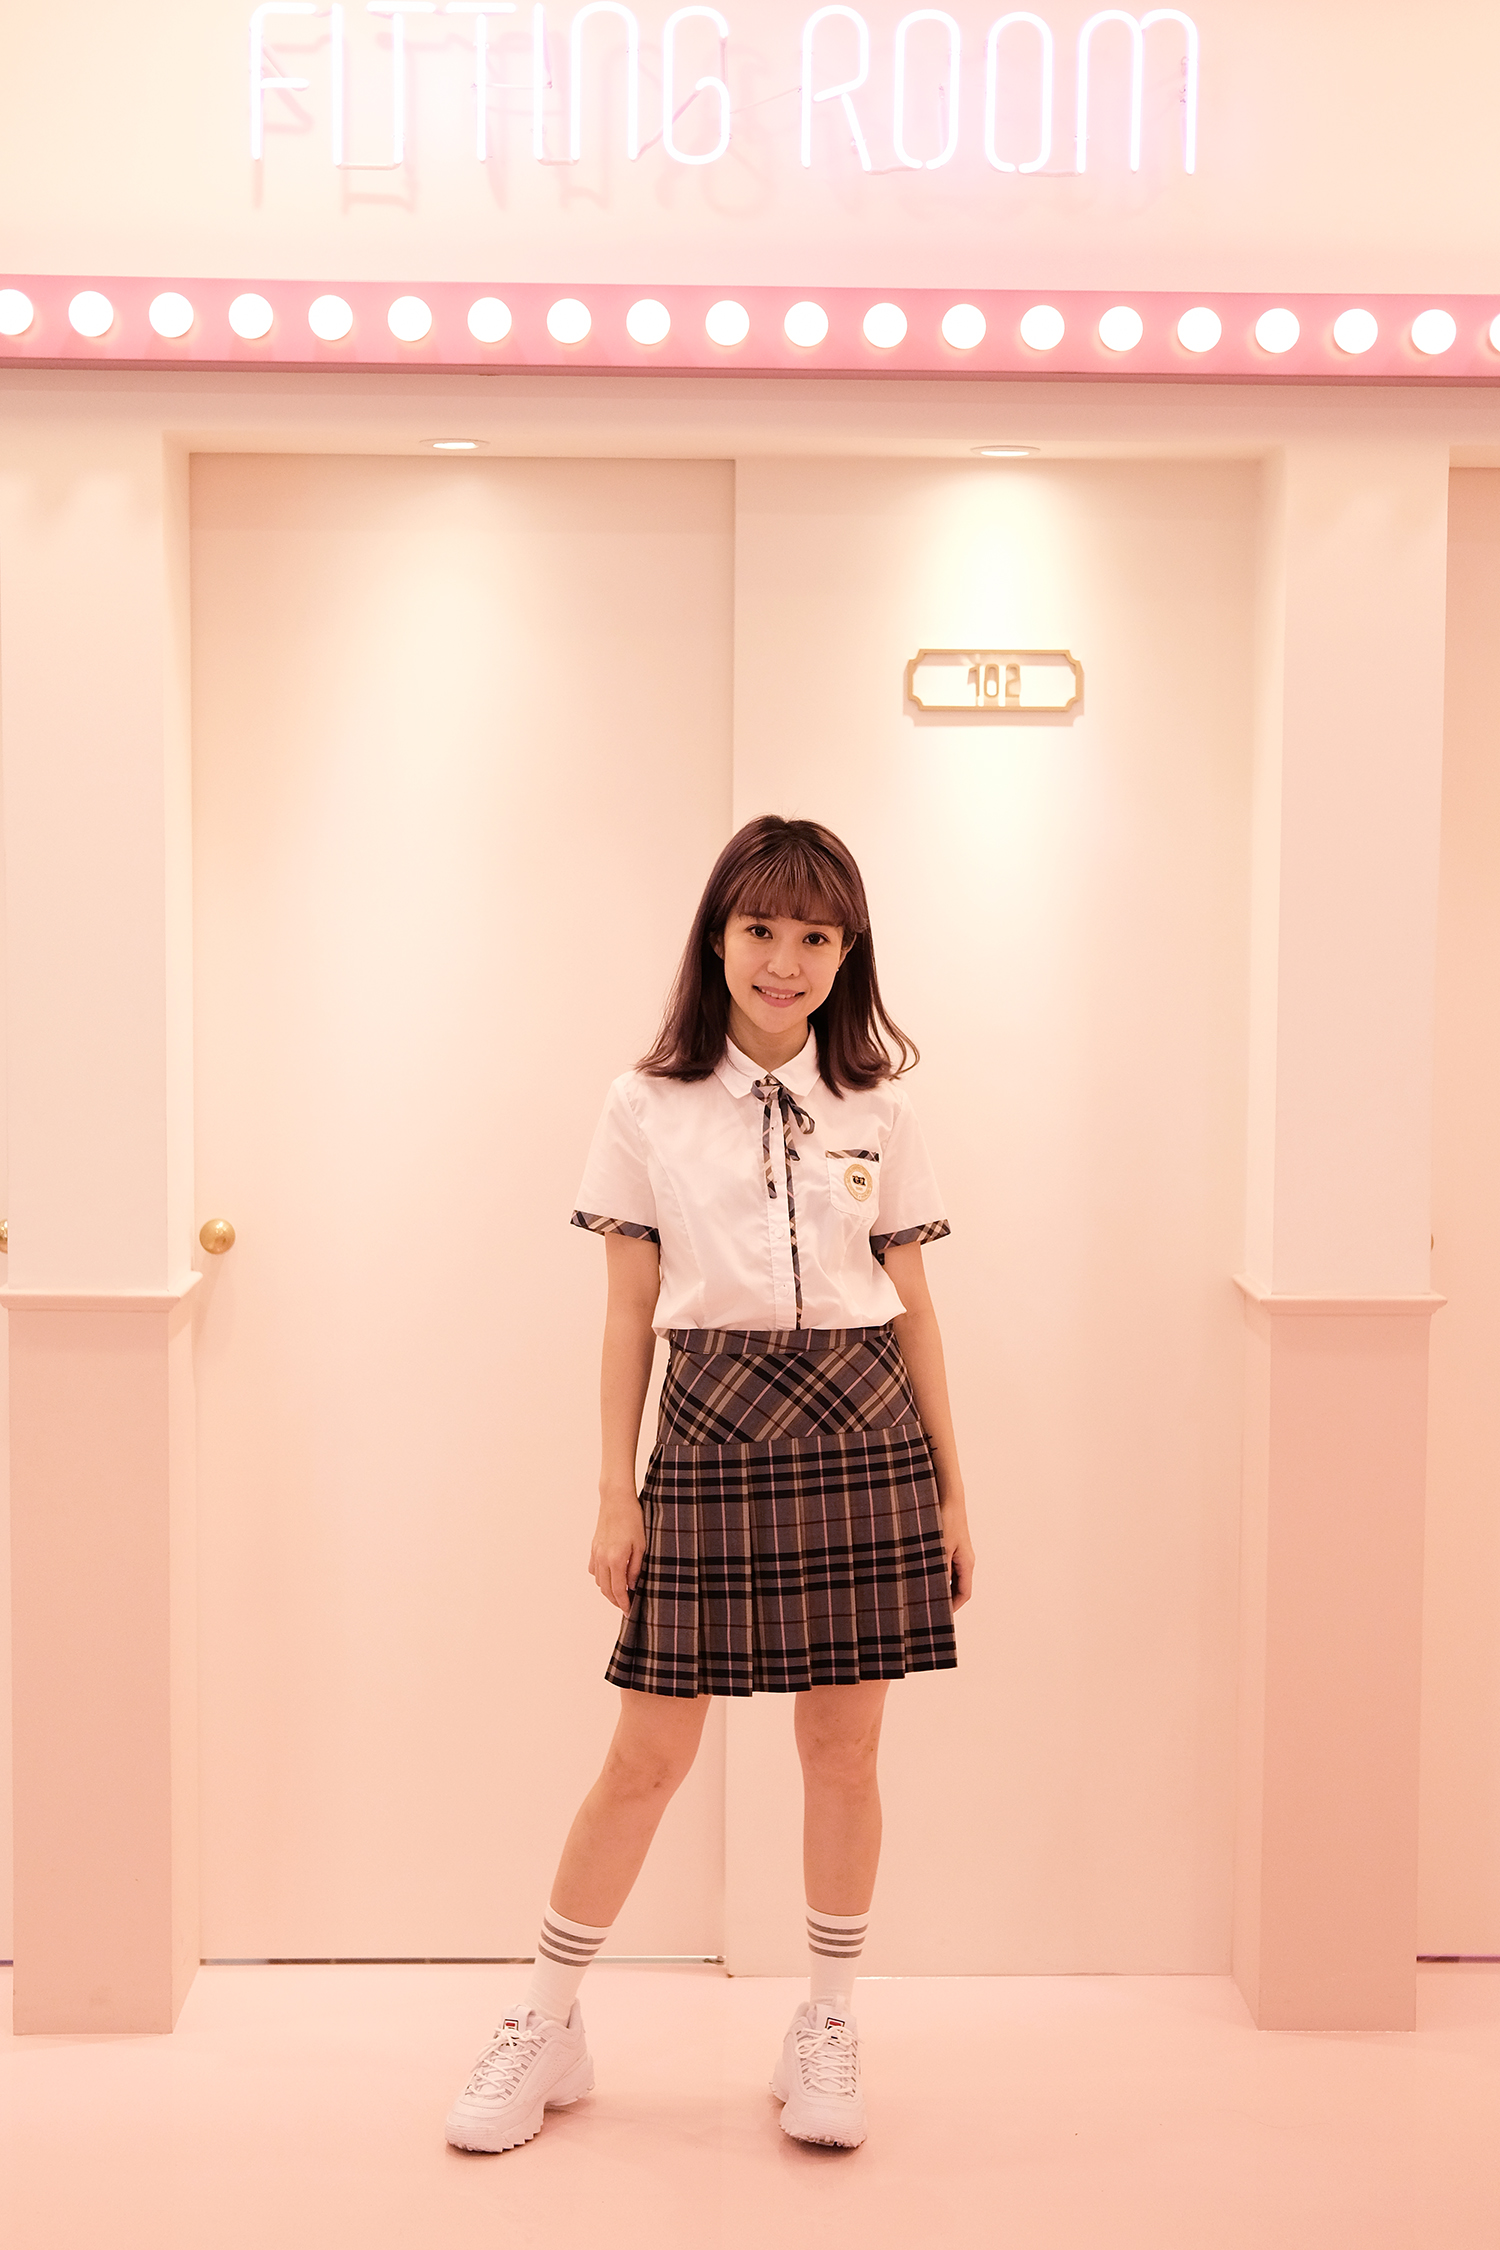 Korean_School_Uniform_Rental_Ehwa_Gyobok_Seoul_Korea_1